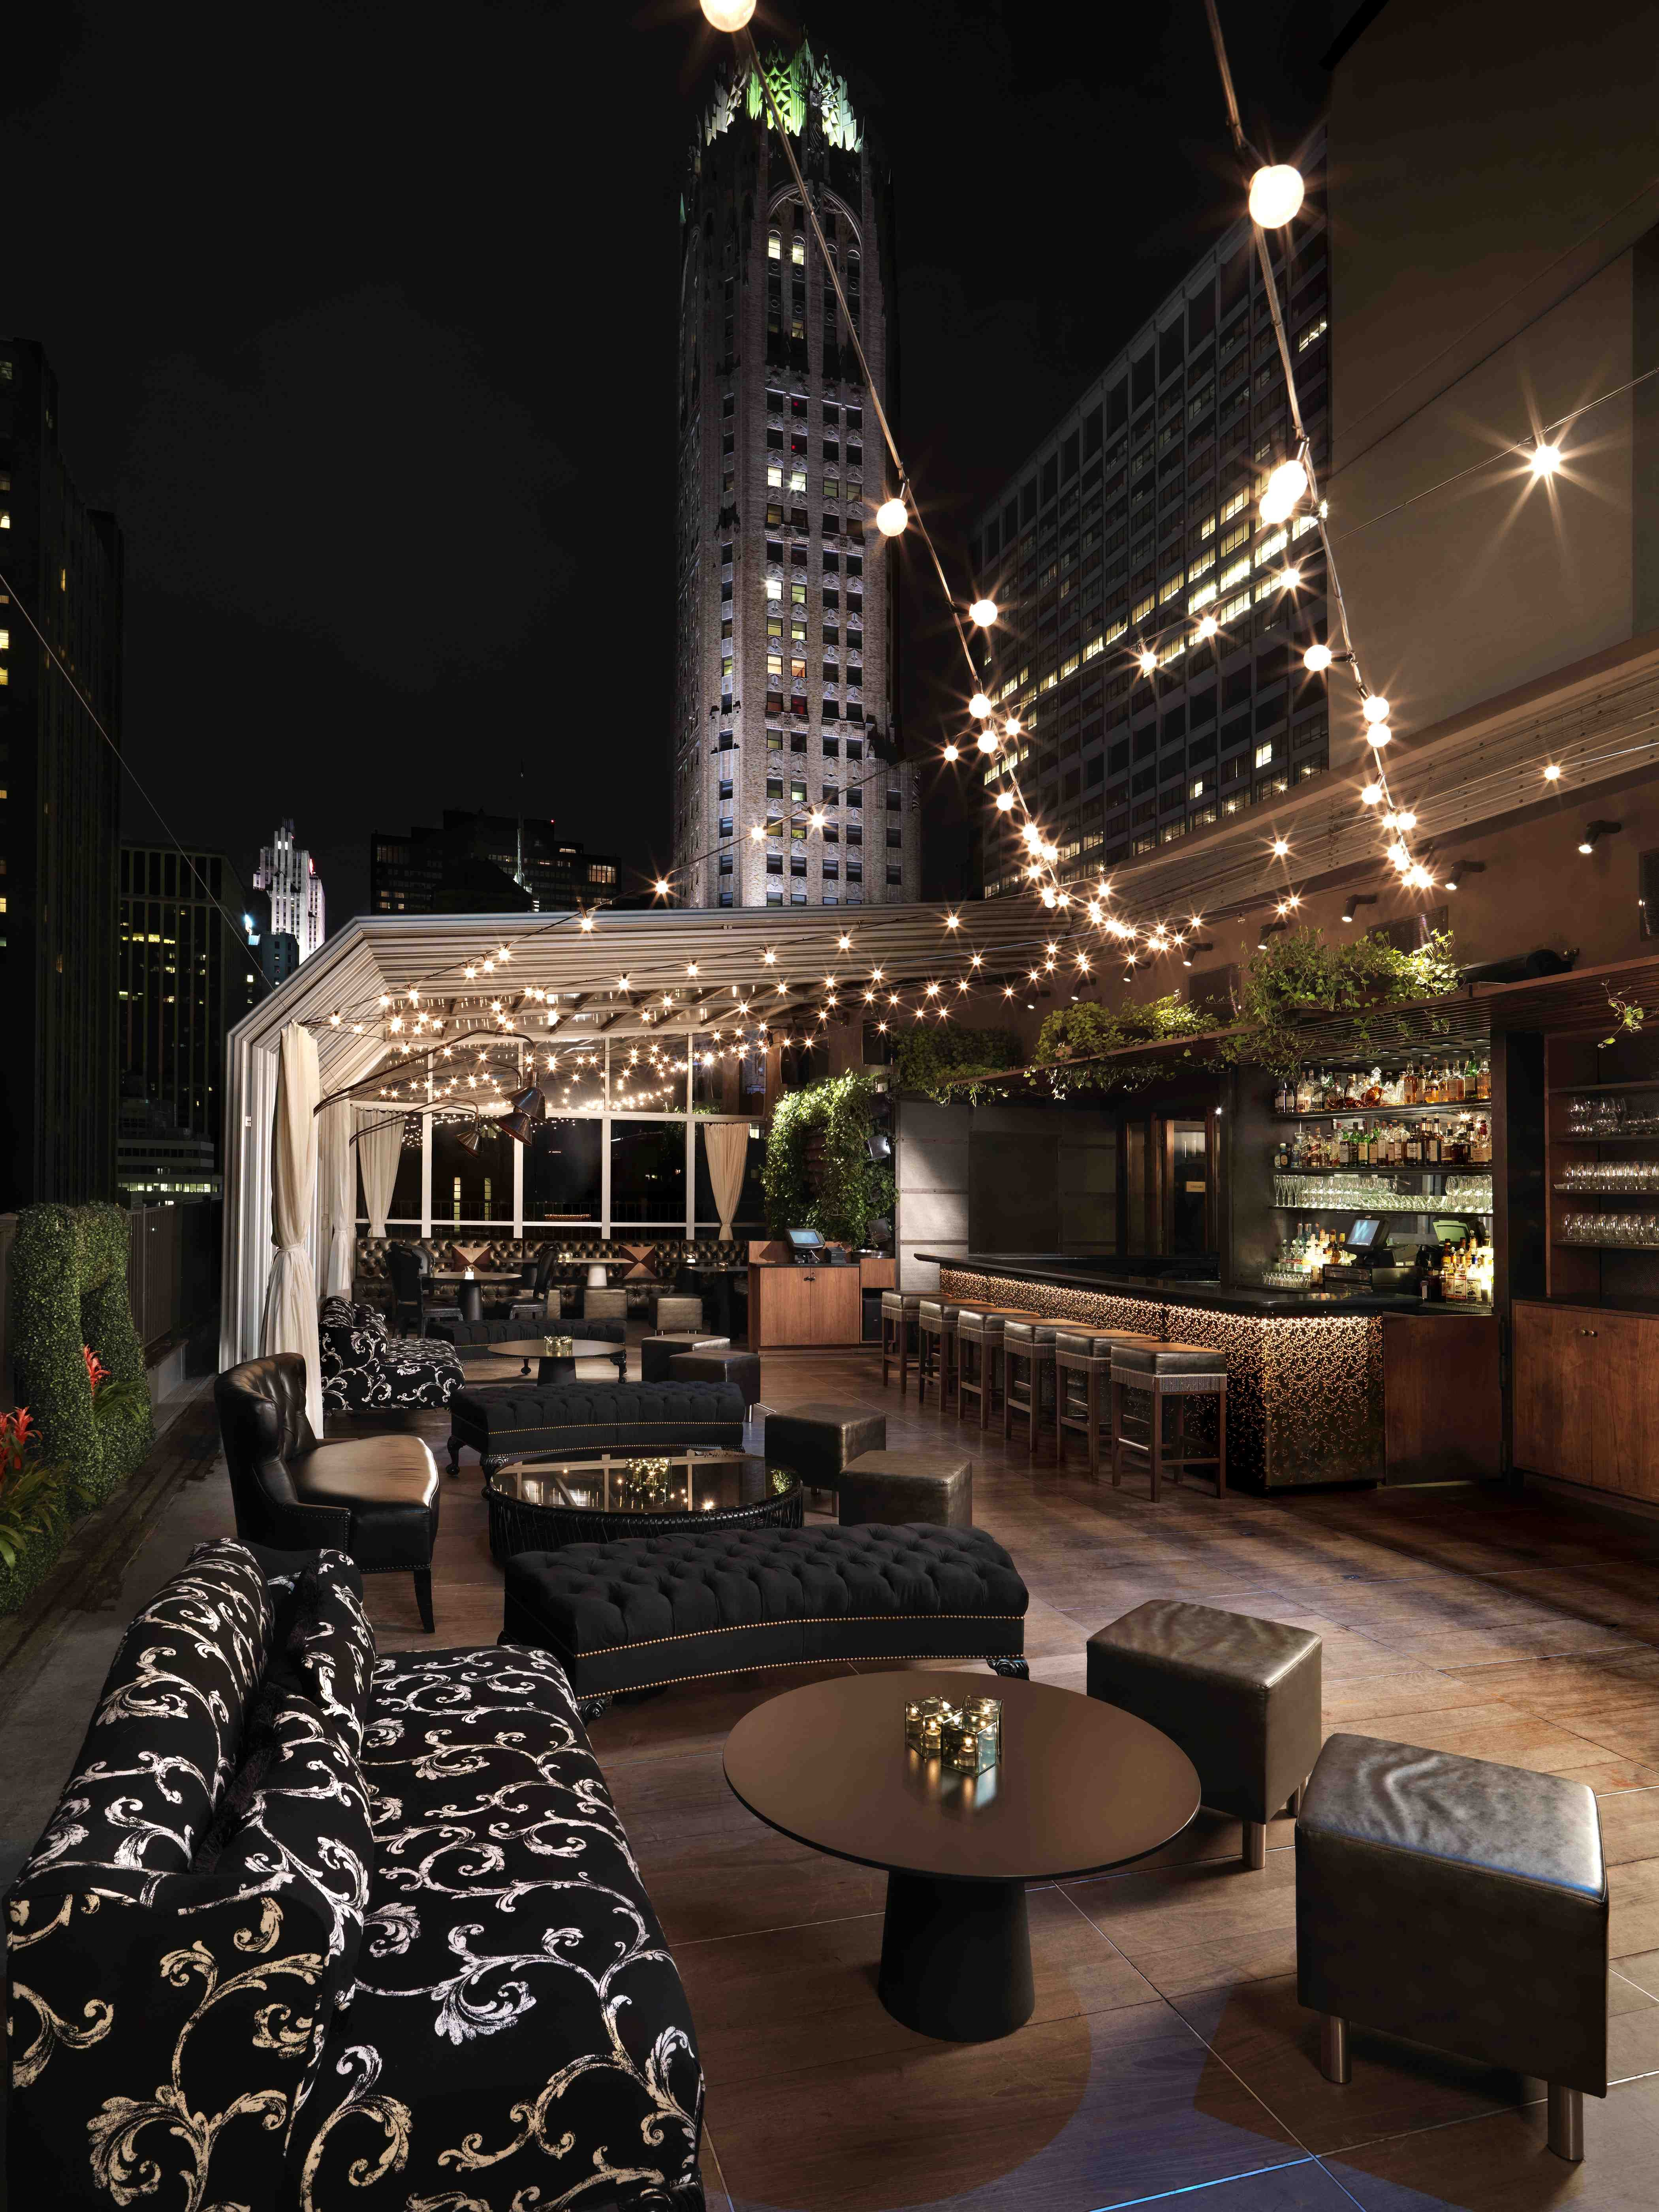 Kimberly Hotel Rooftop Bar New York